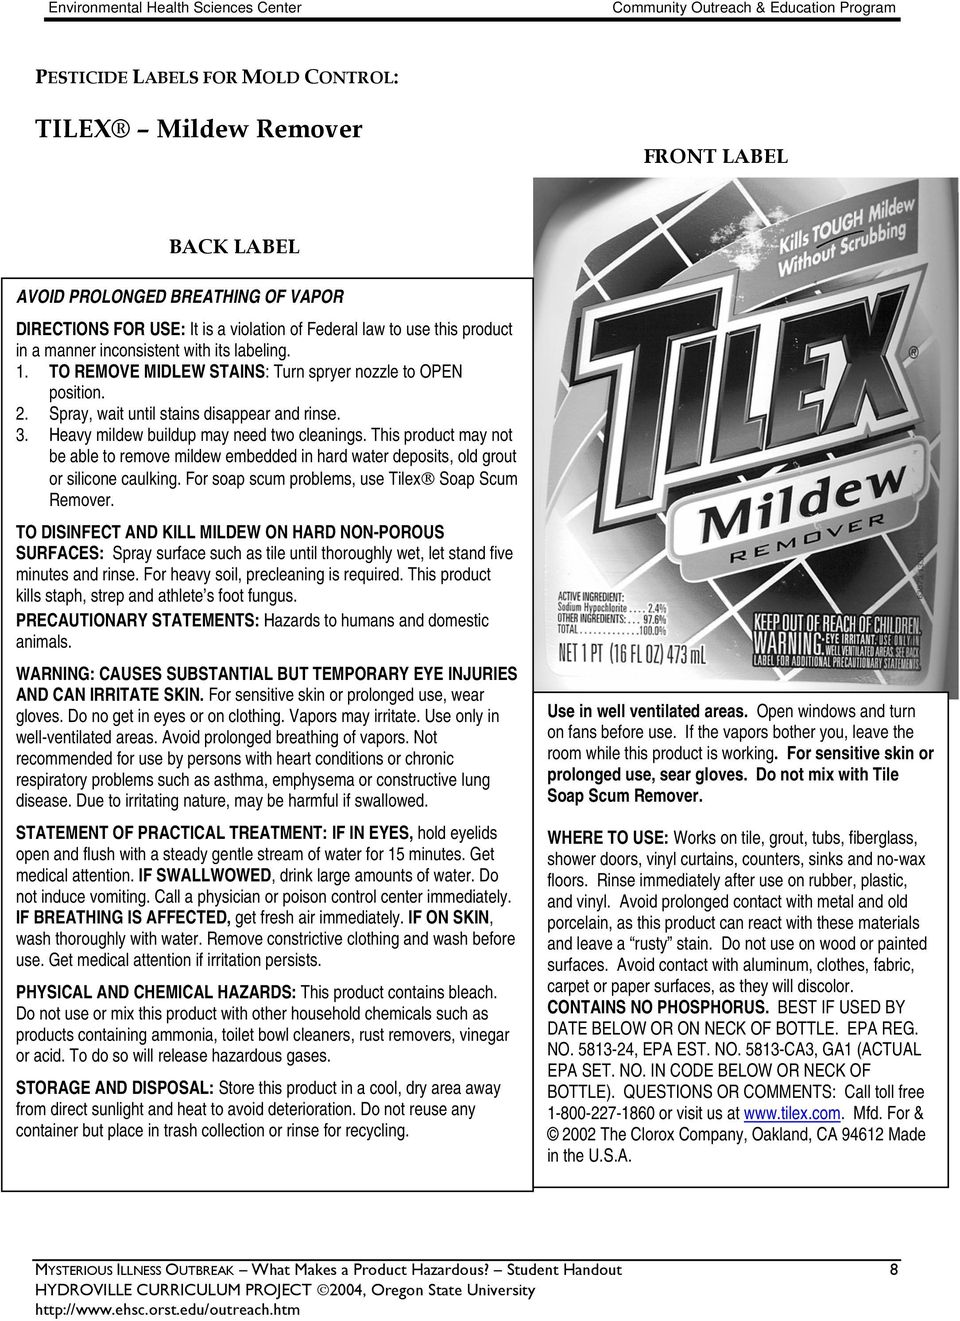 This product may not be able to remove mildew embedded in hard water deposits, old grout or silicone caulking. For soap scum problems, use Tilex Soap Scum Remover.